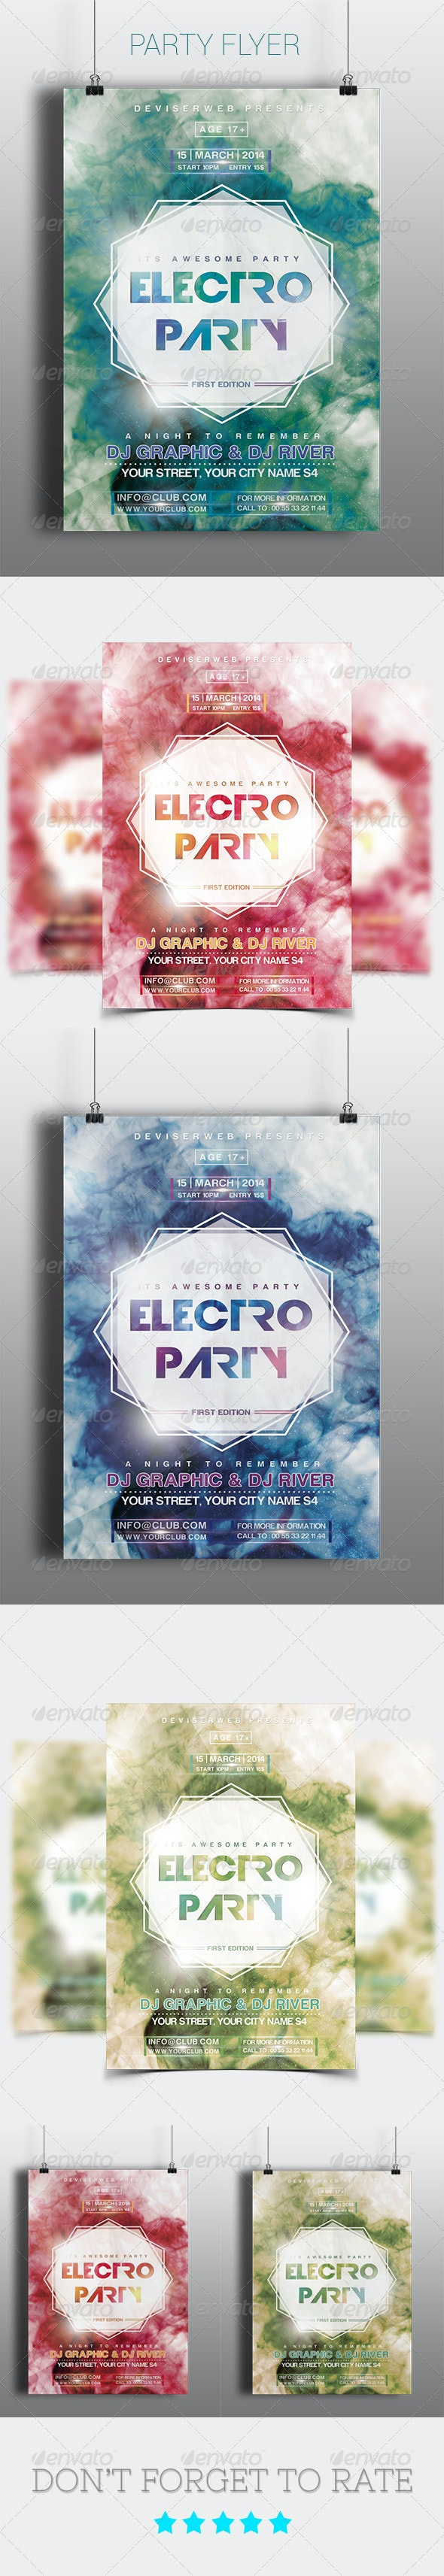 Futuristic Electro Party Flyer Templates - Clubs & Parties Events